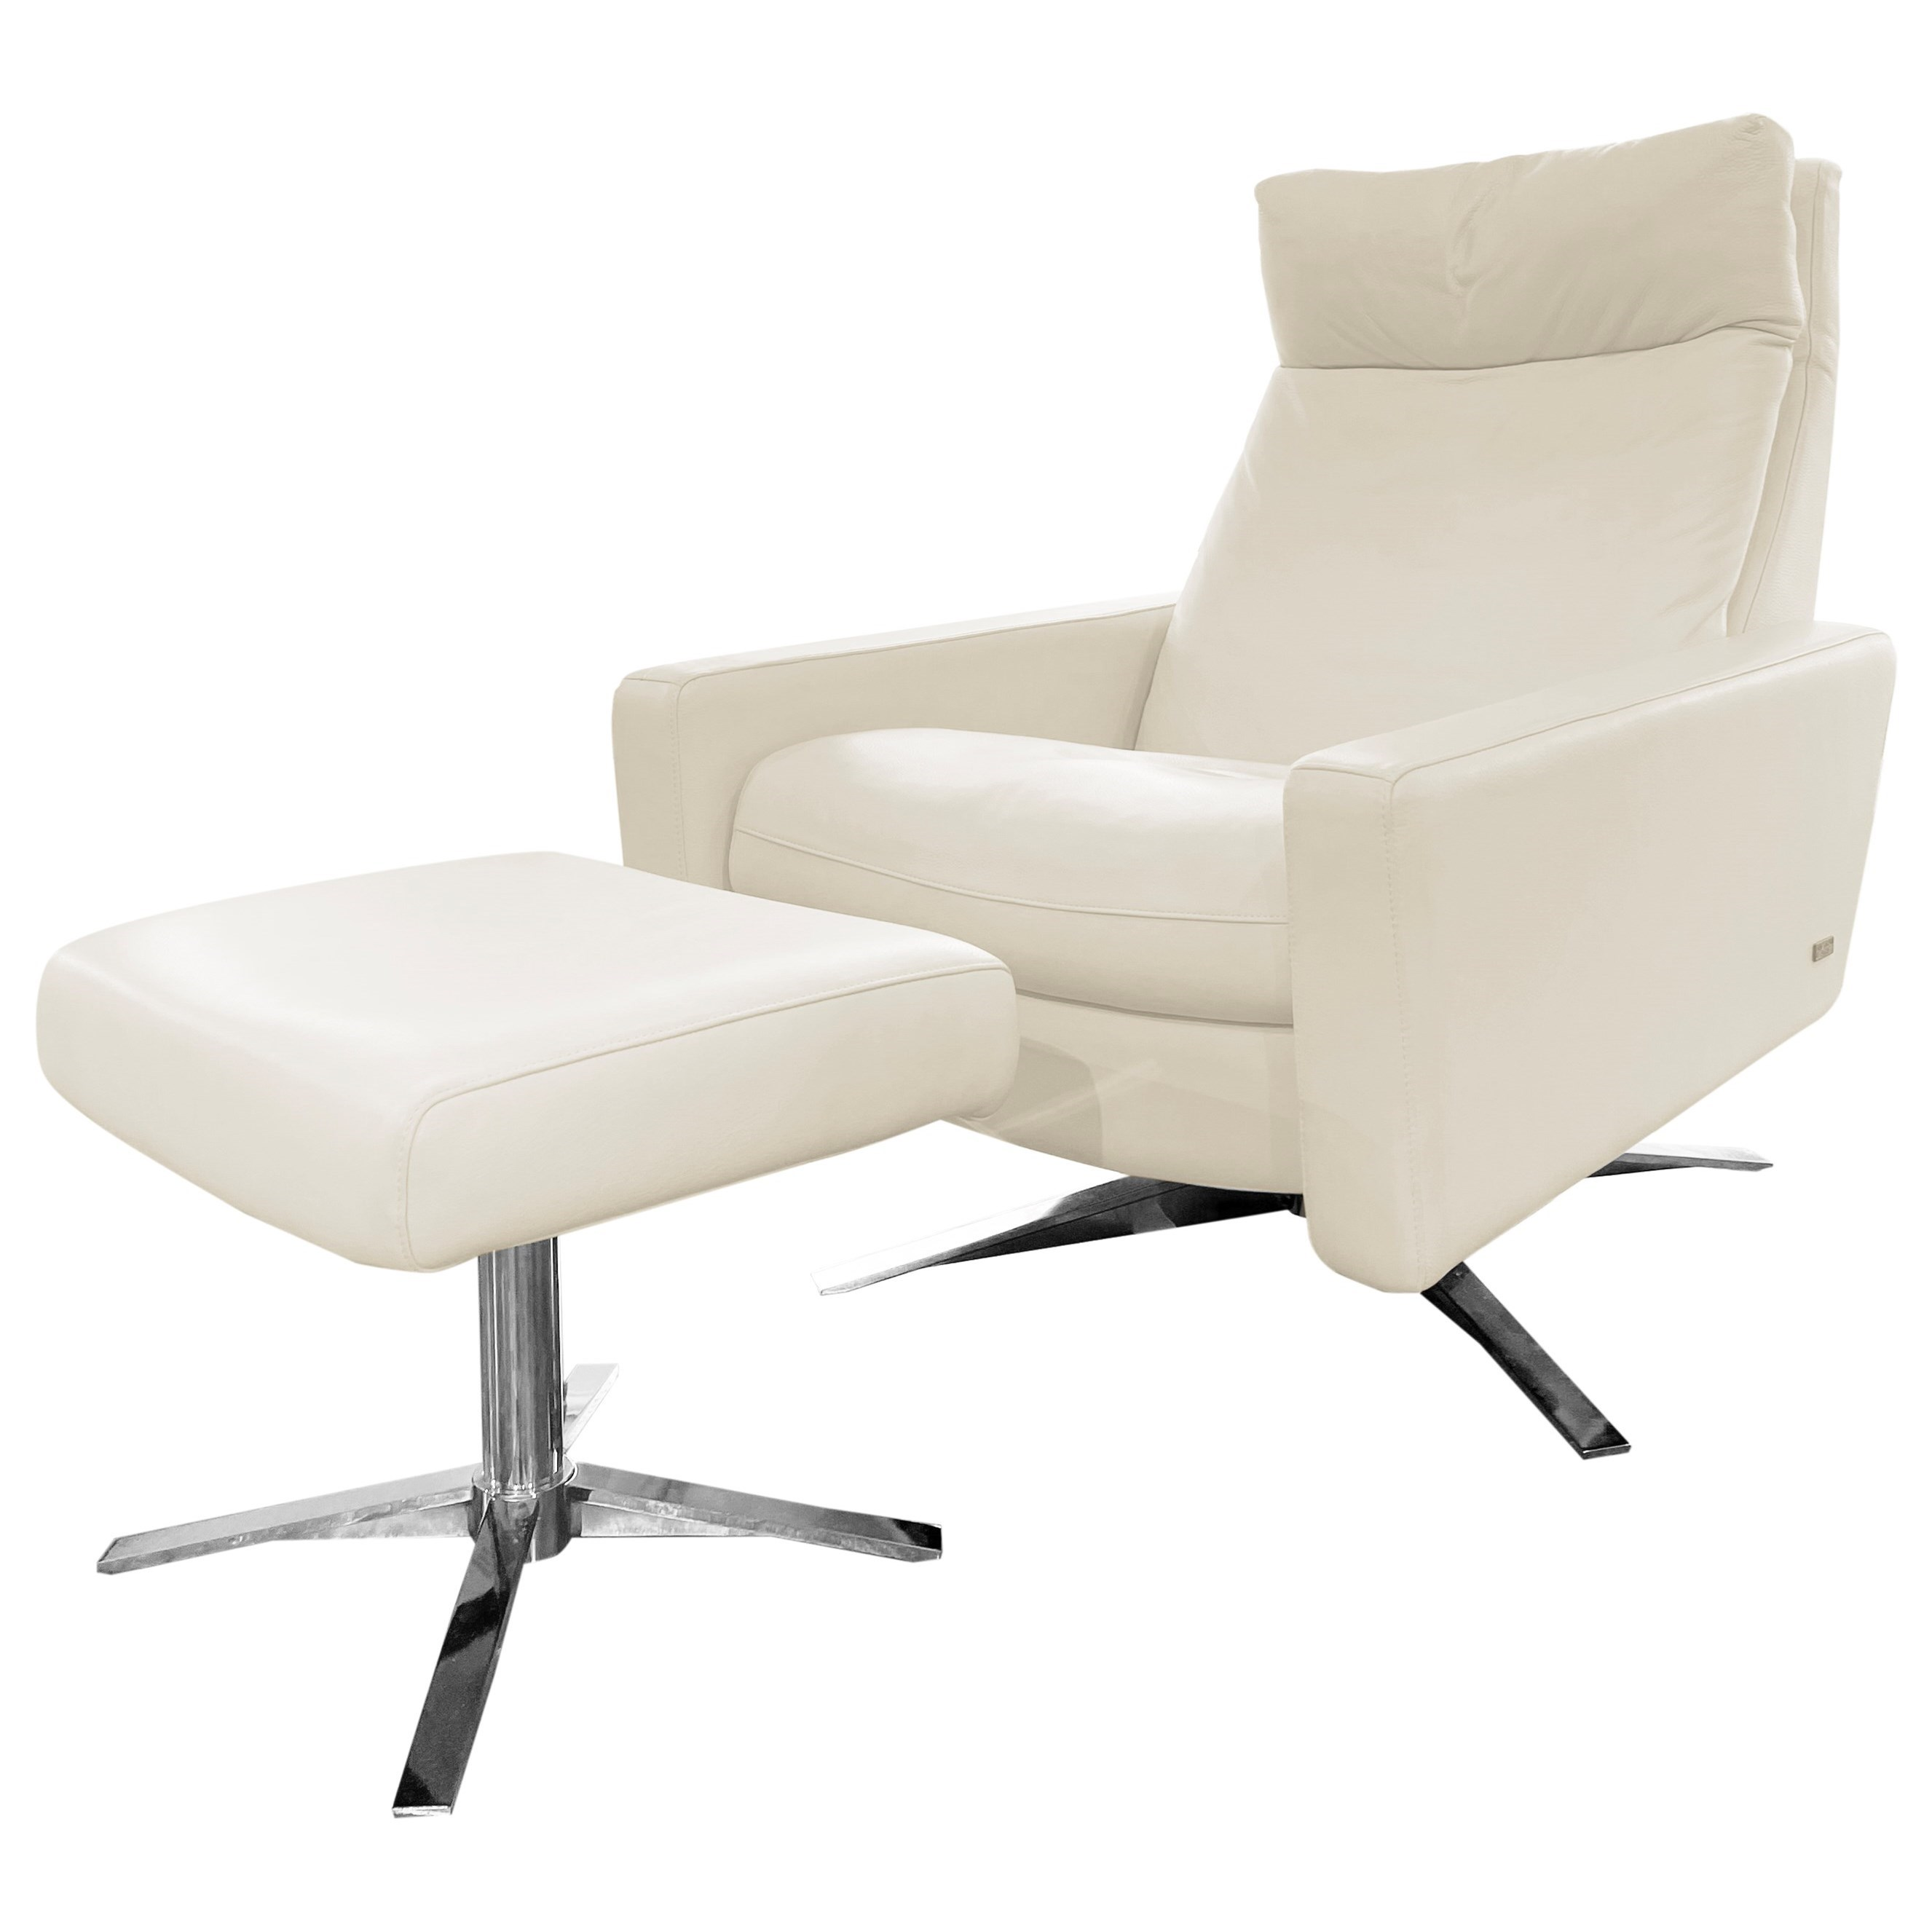 Cumulus Leather Chair and Ottoman by American Leather at Baer's Furniture